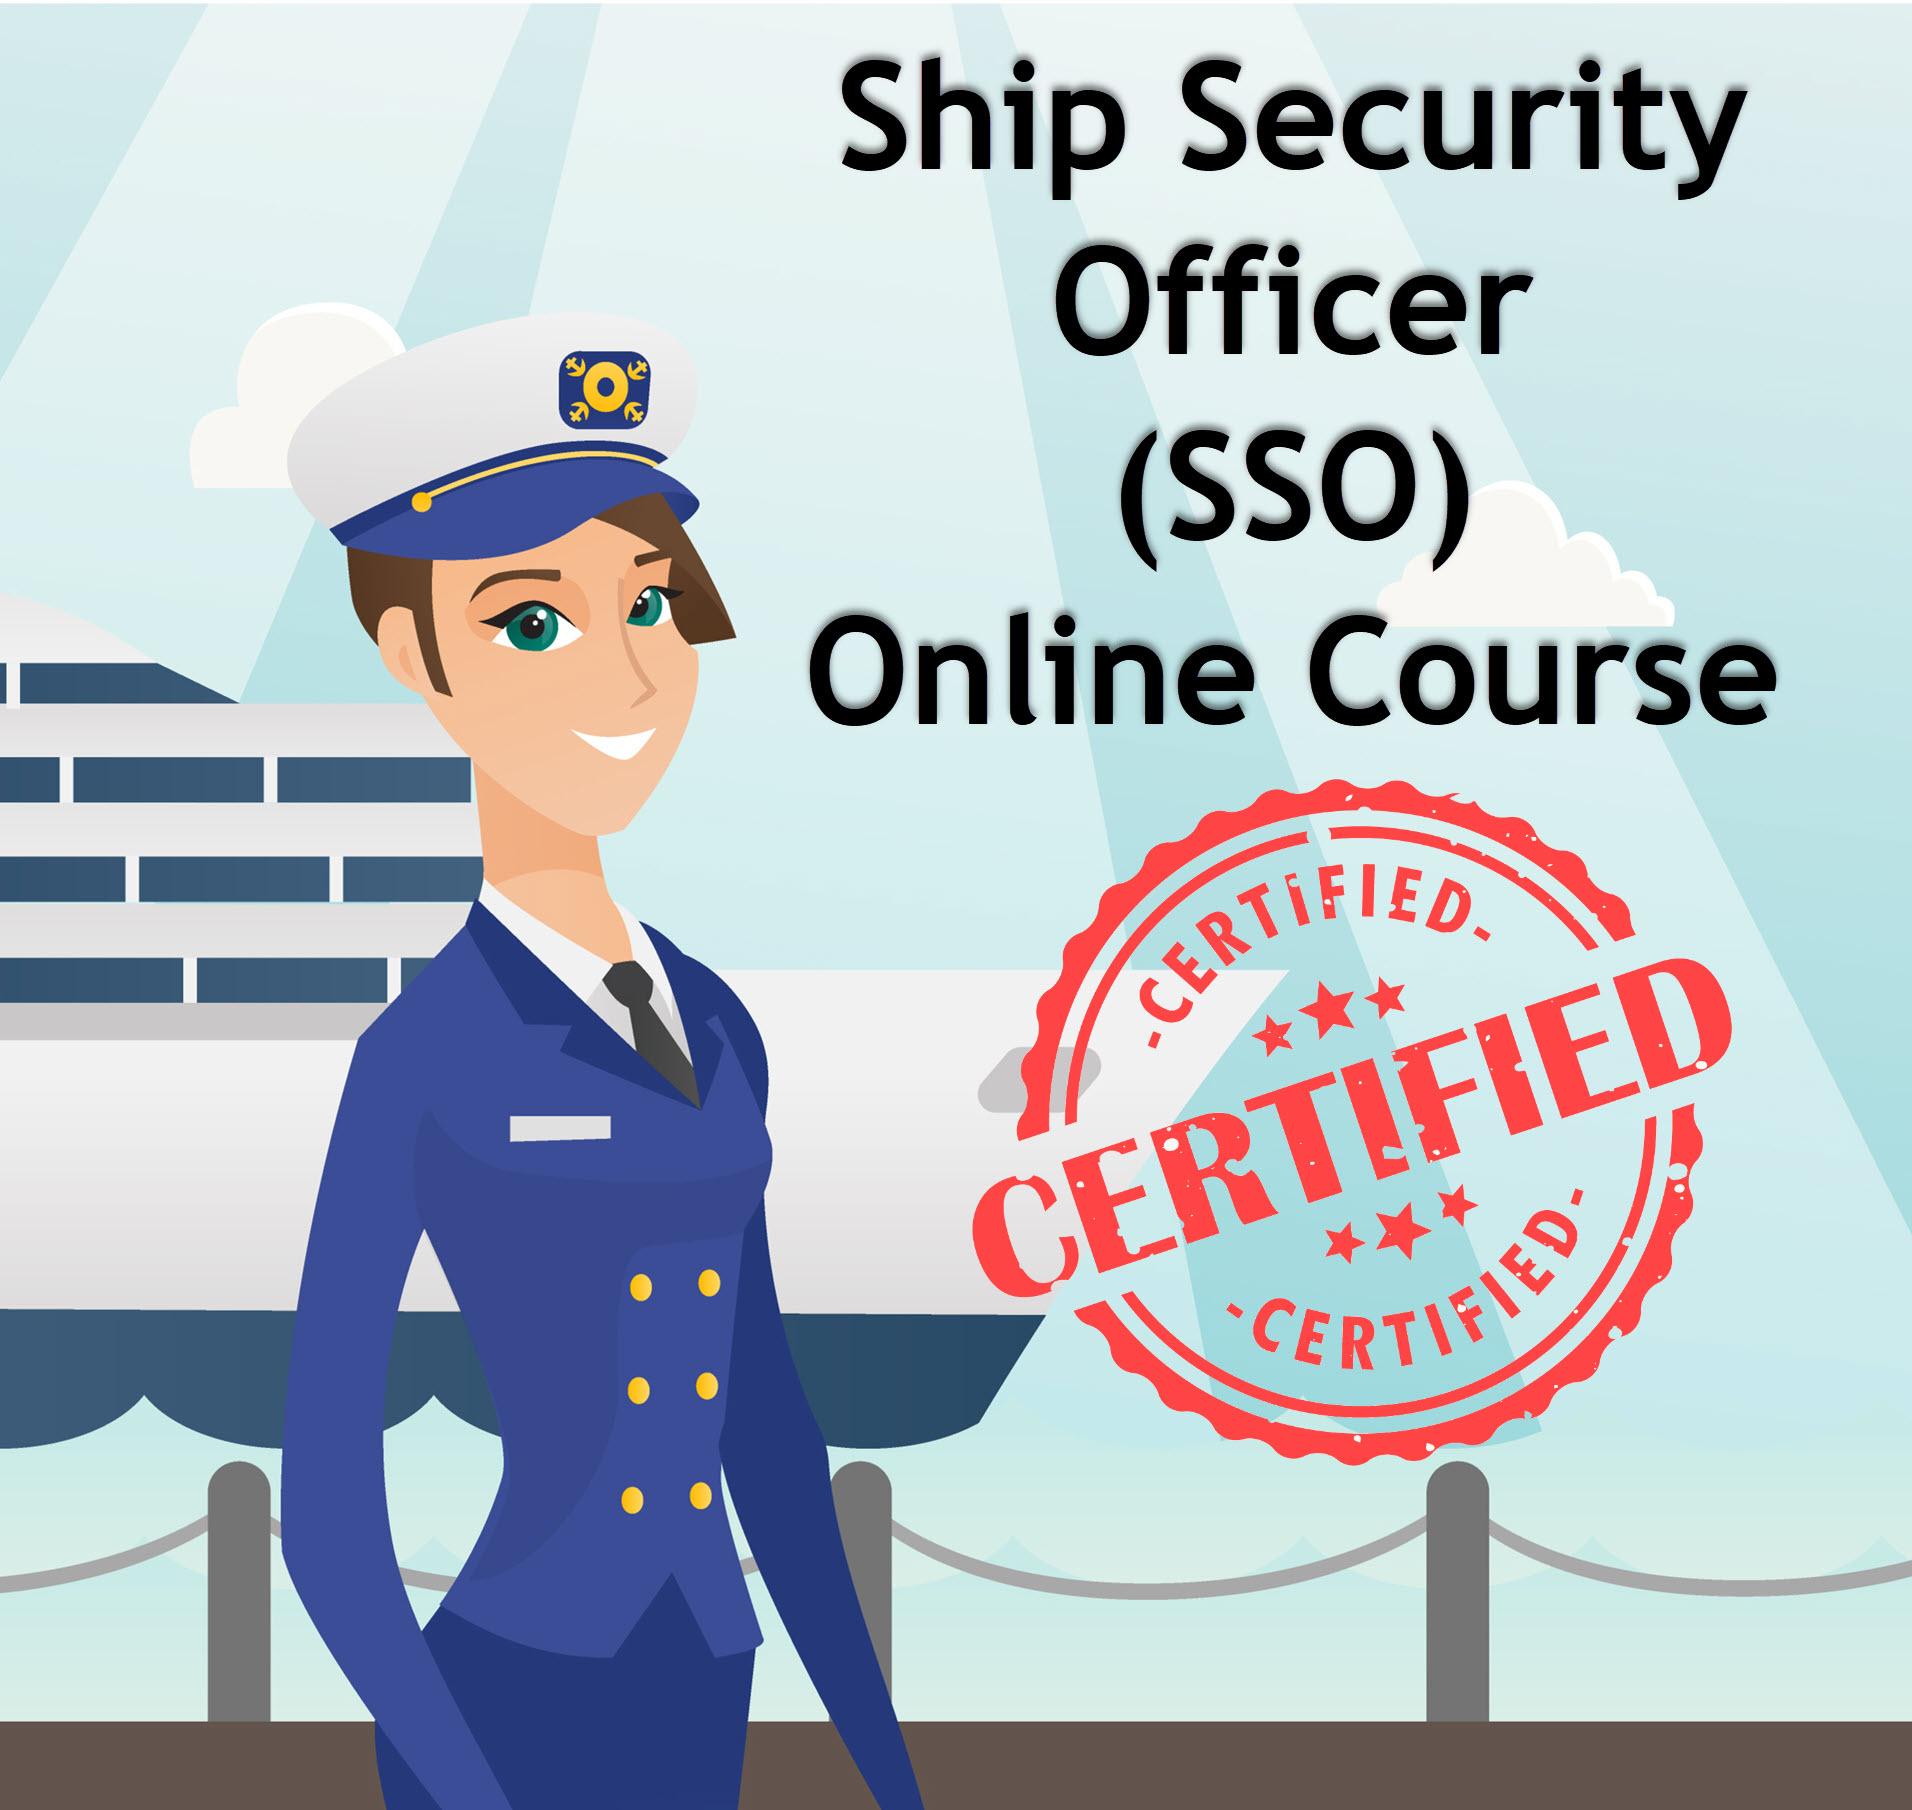 Ship Security Officer (SSO) Online Course